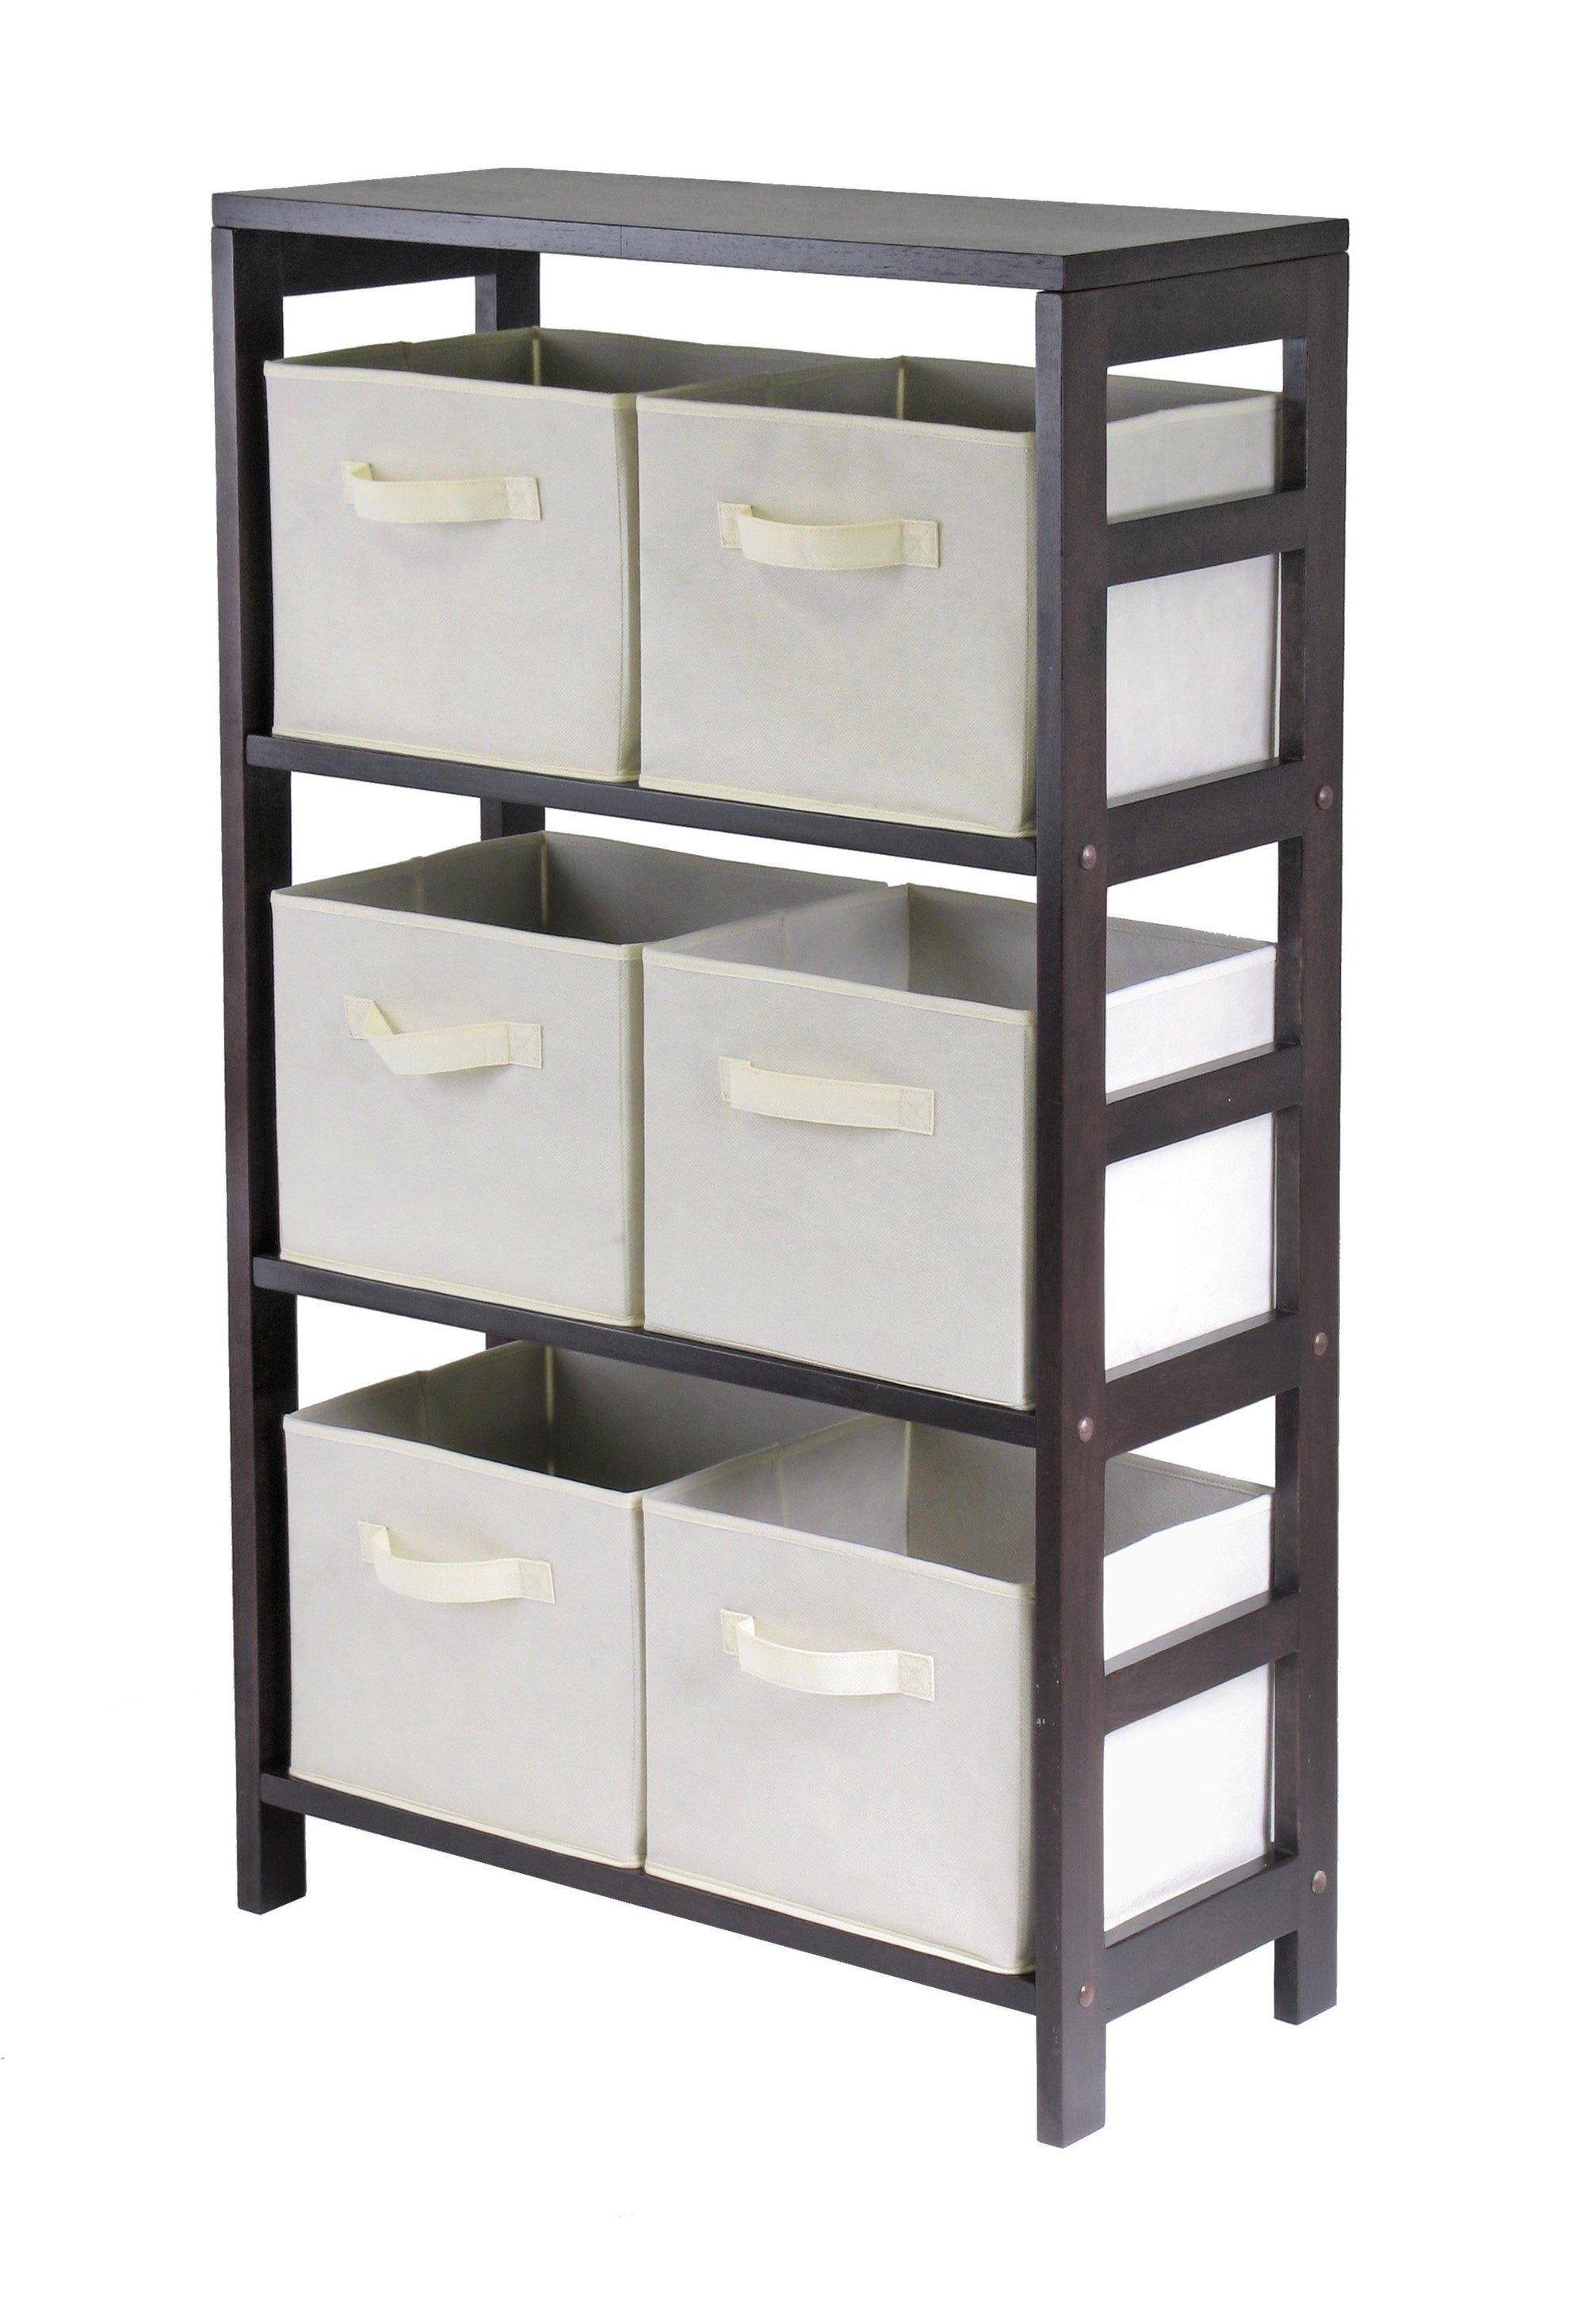 Capri 3-Section M Storage Shelf with 6 Foldable Beige Fabric Baskets - My USA Furniture